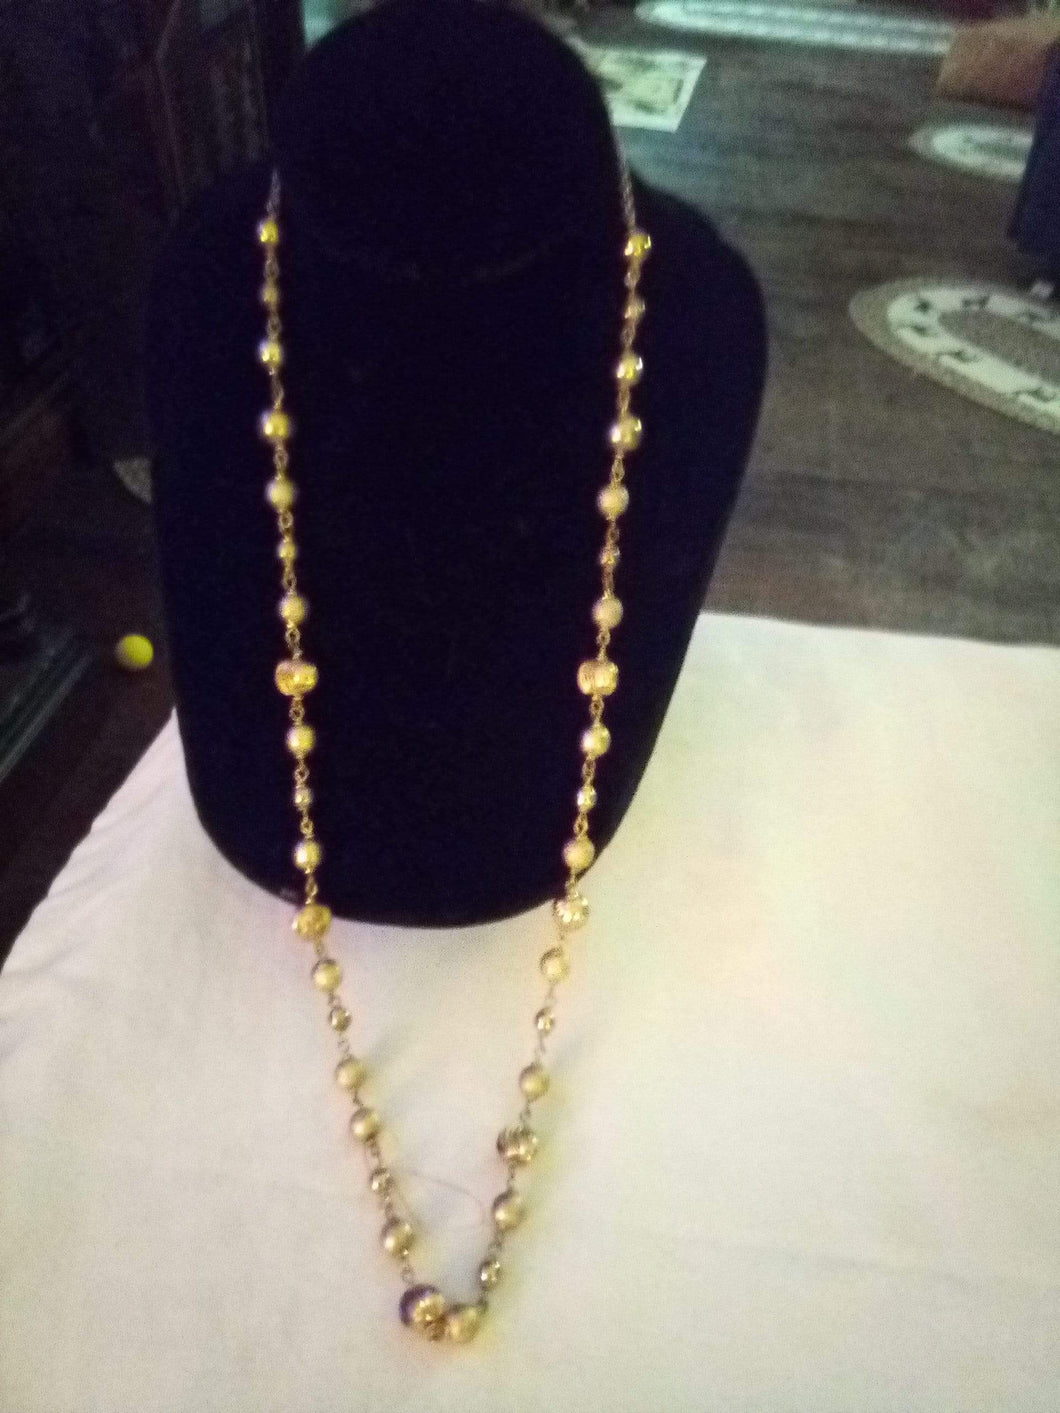 Gorgeous gold beaded long necklace - B&P'sringsnthings